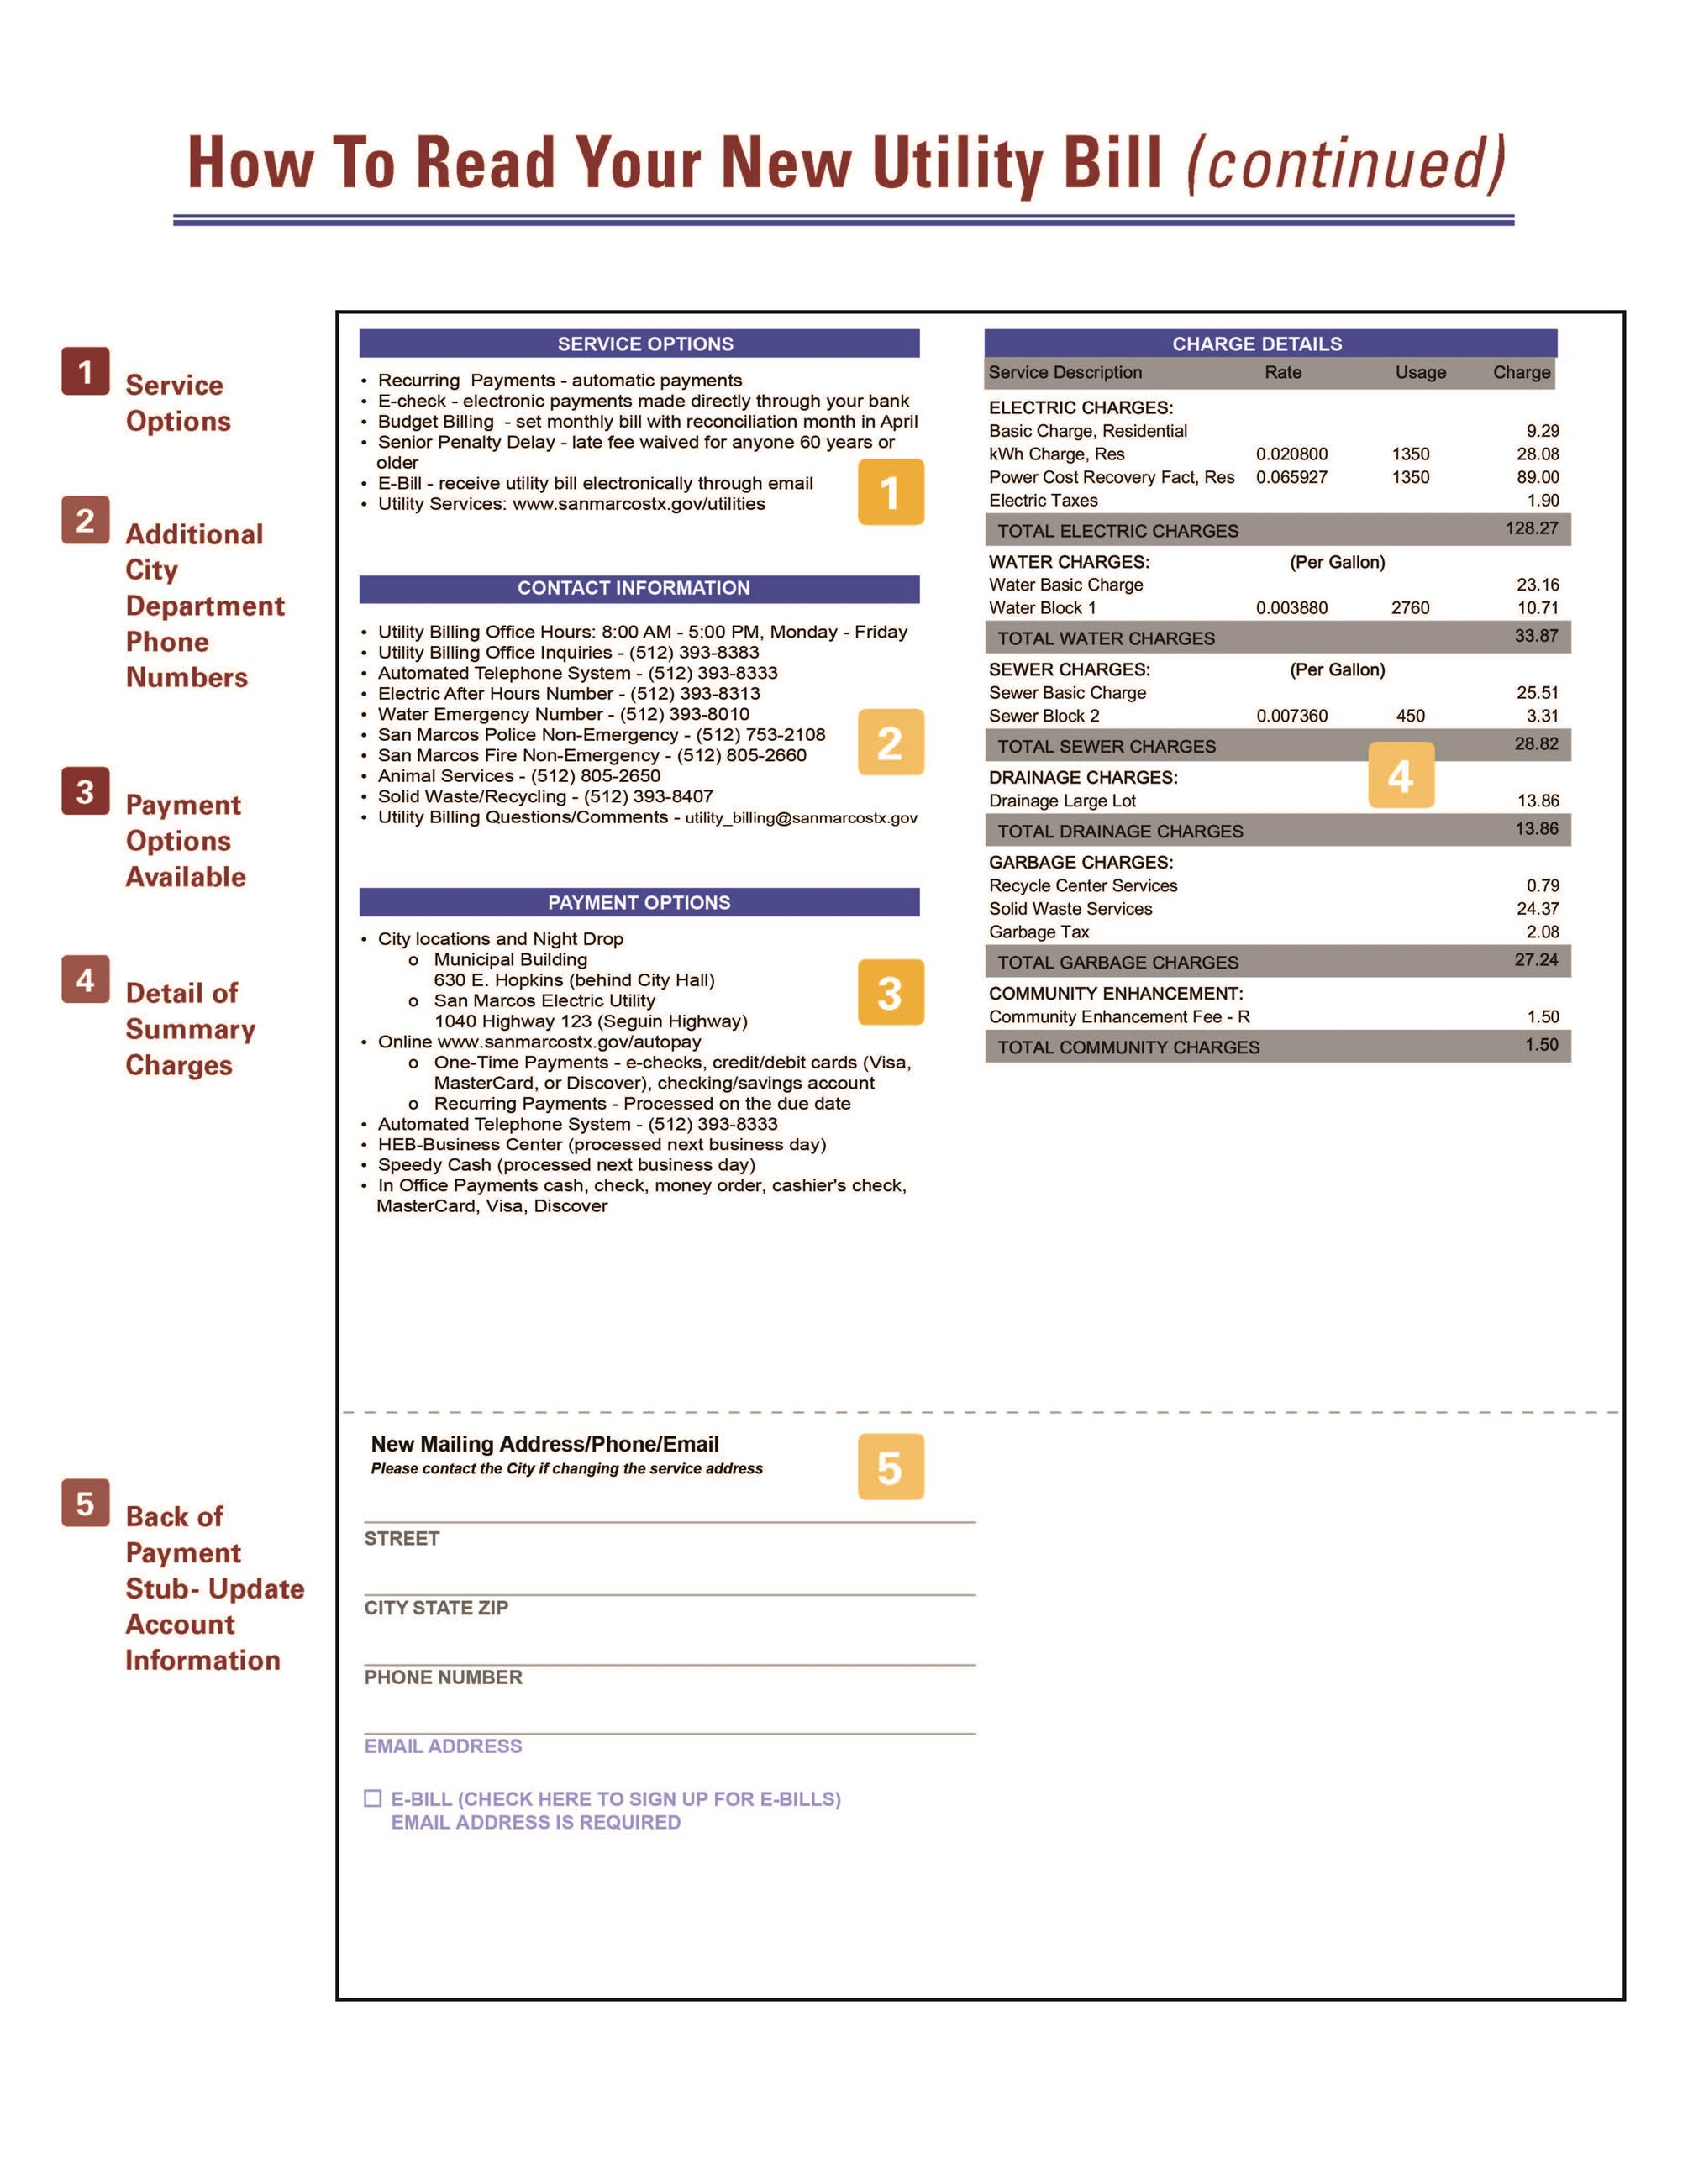 City of San Marcos Utility How To Read Your Bill 2019 Page 2